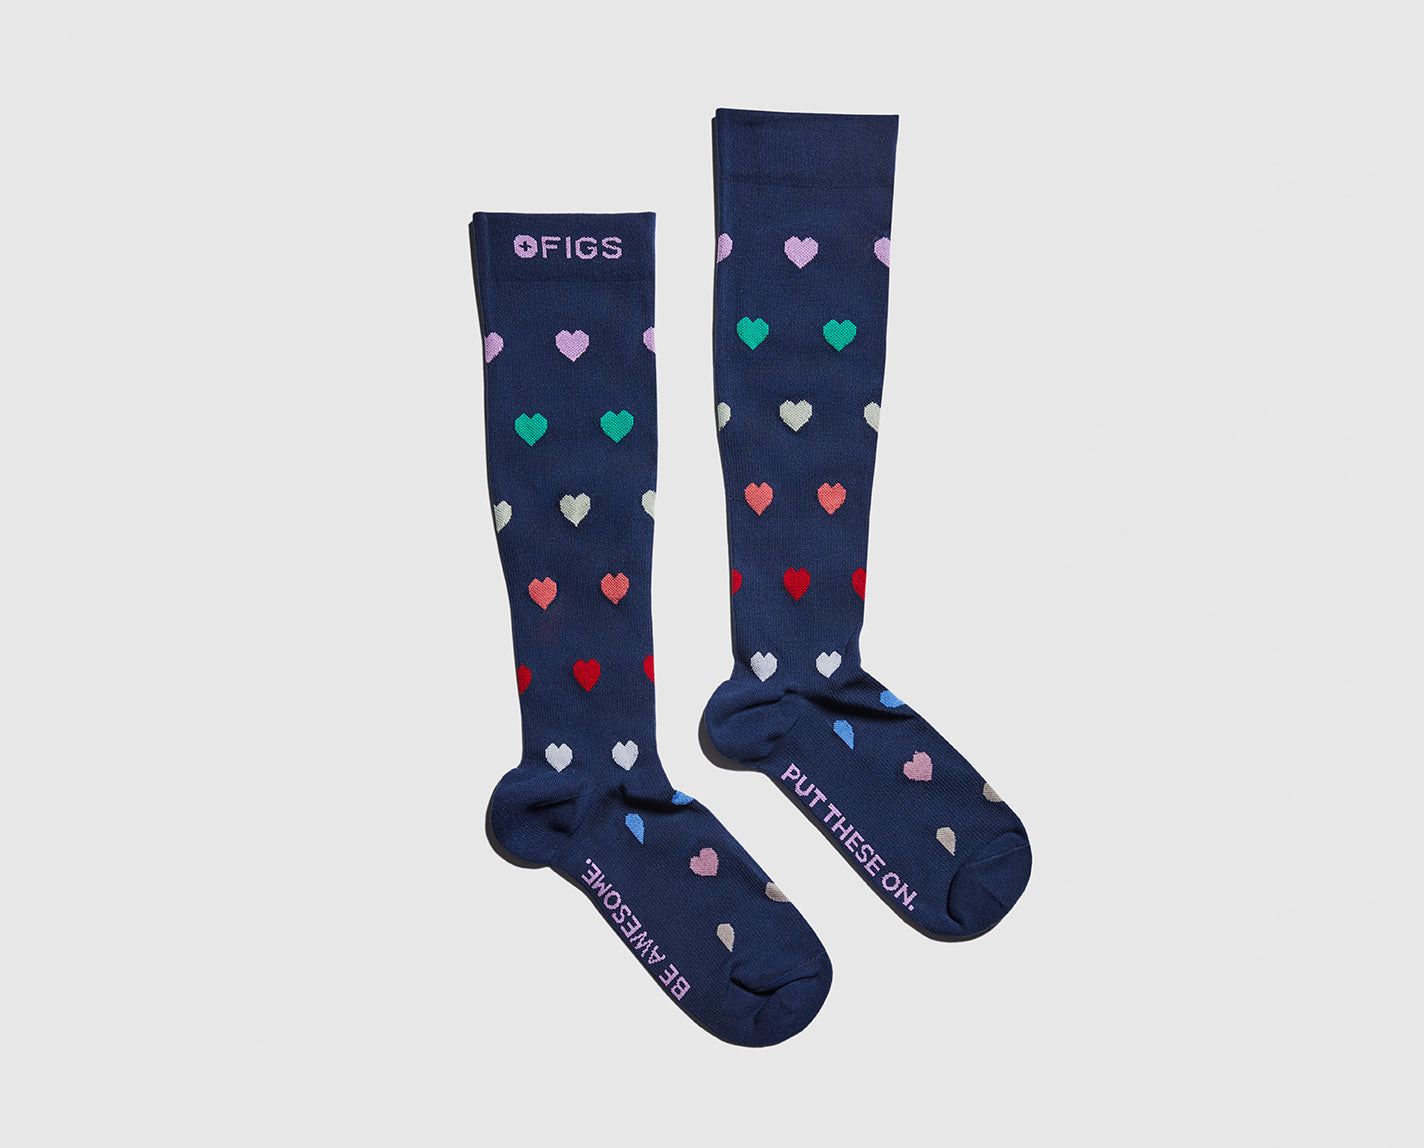 Our Pride 100% Awesome Compression Socks are ridiculously soft and help relieve tired and achy legs.